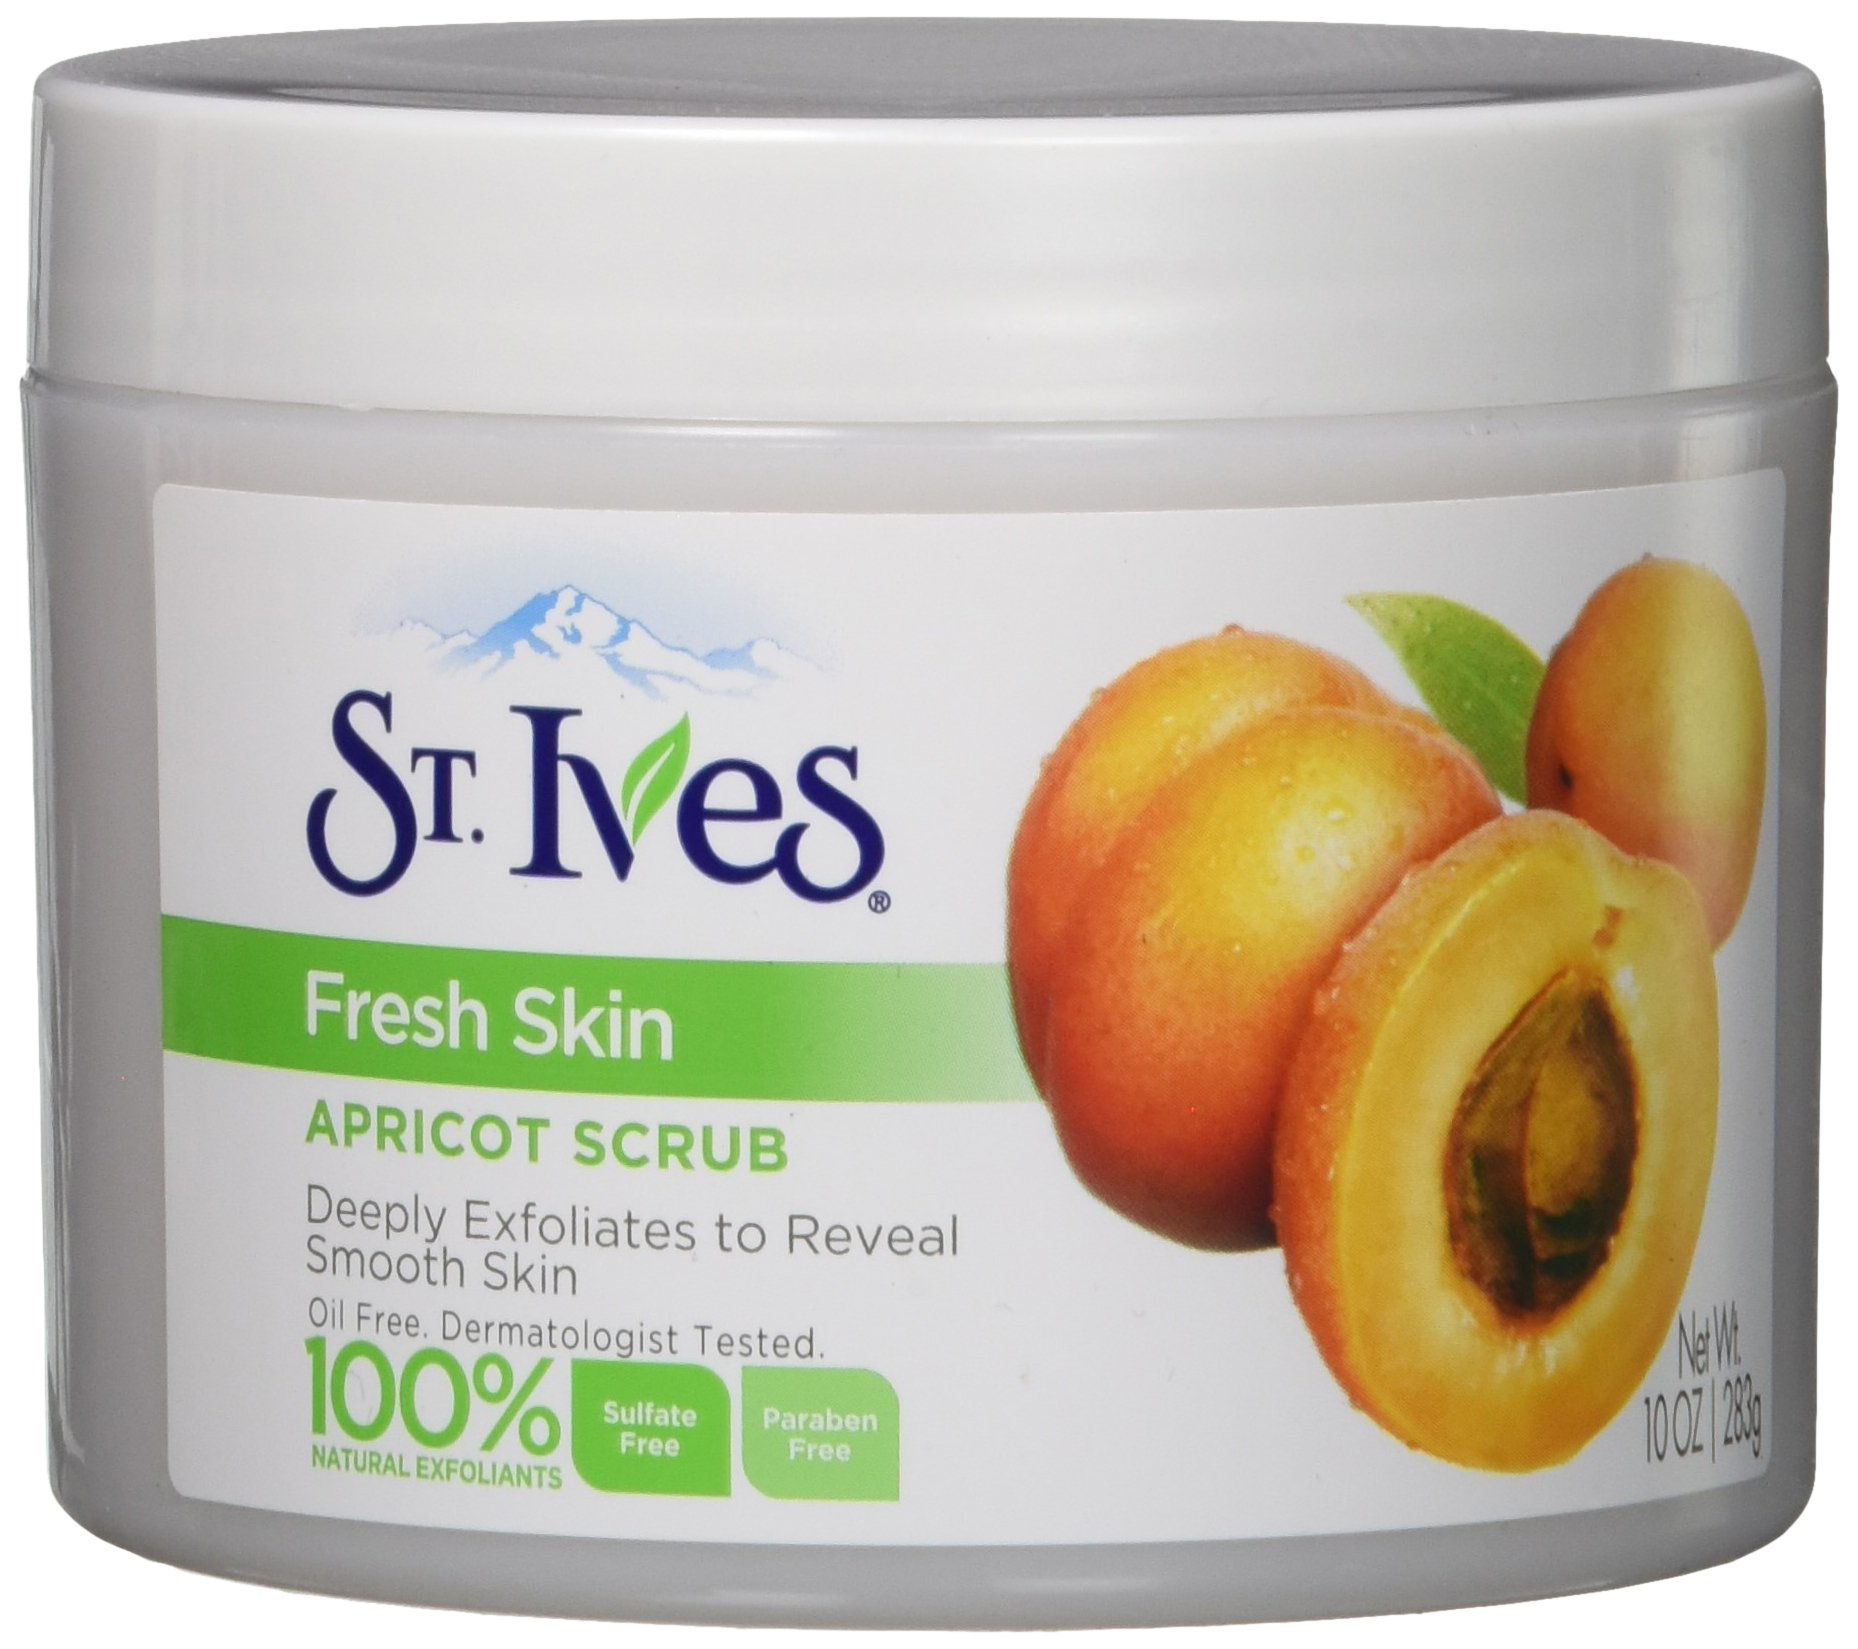 St. Ives Fresh Skin Invigorating Apricot Scrub 10 Oz (2 Pack) by St. Ives